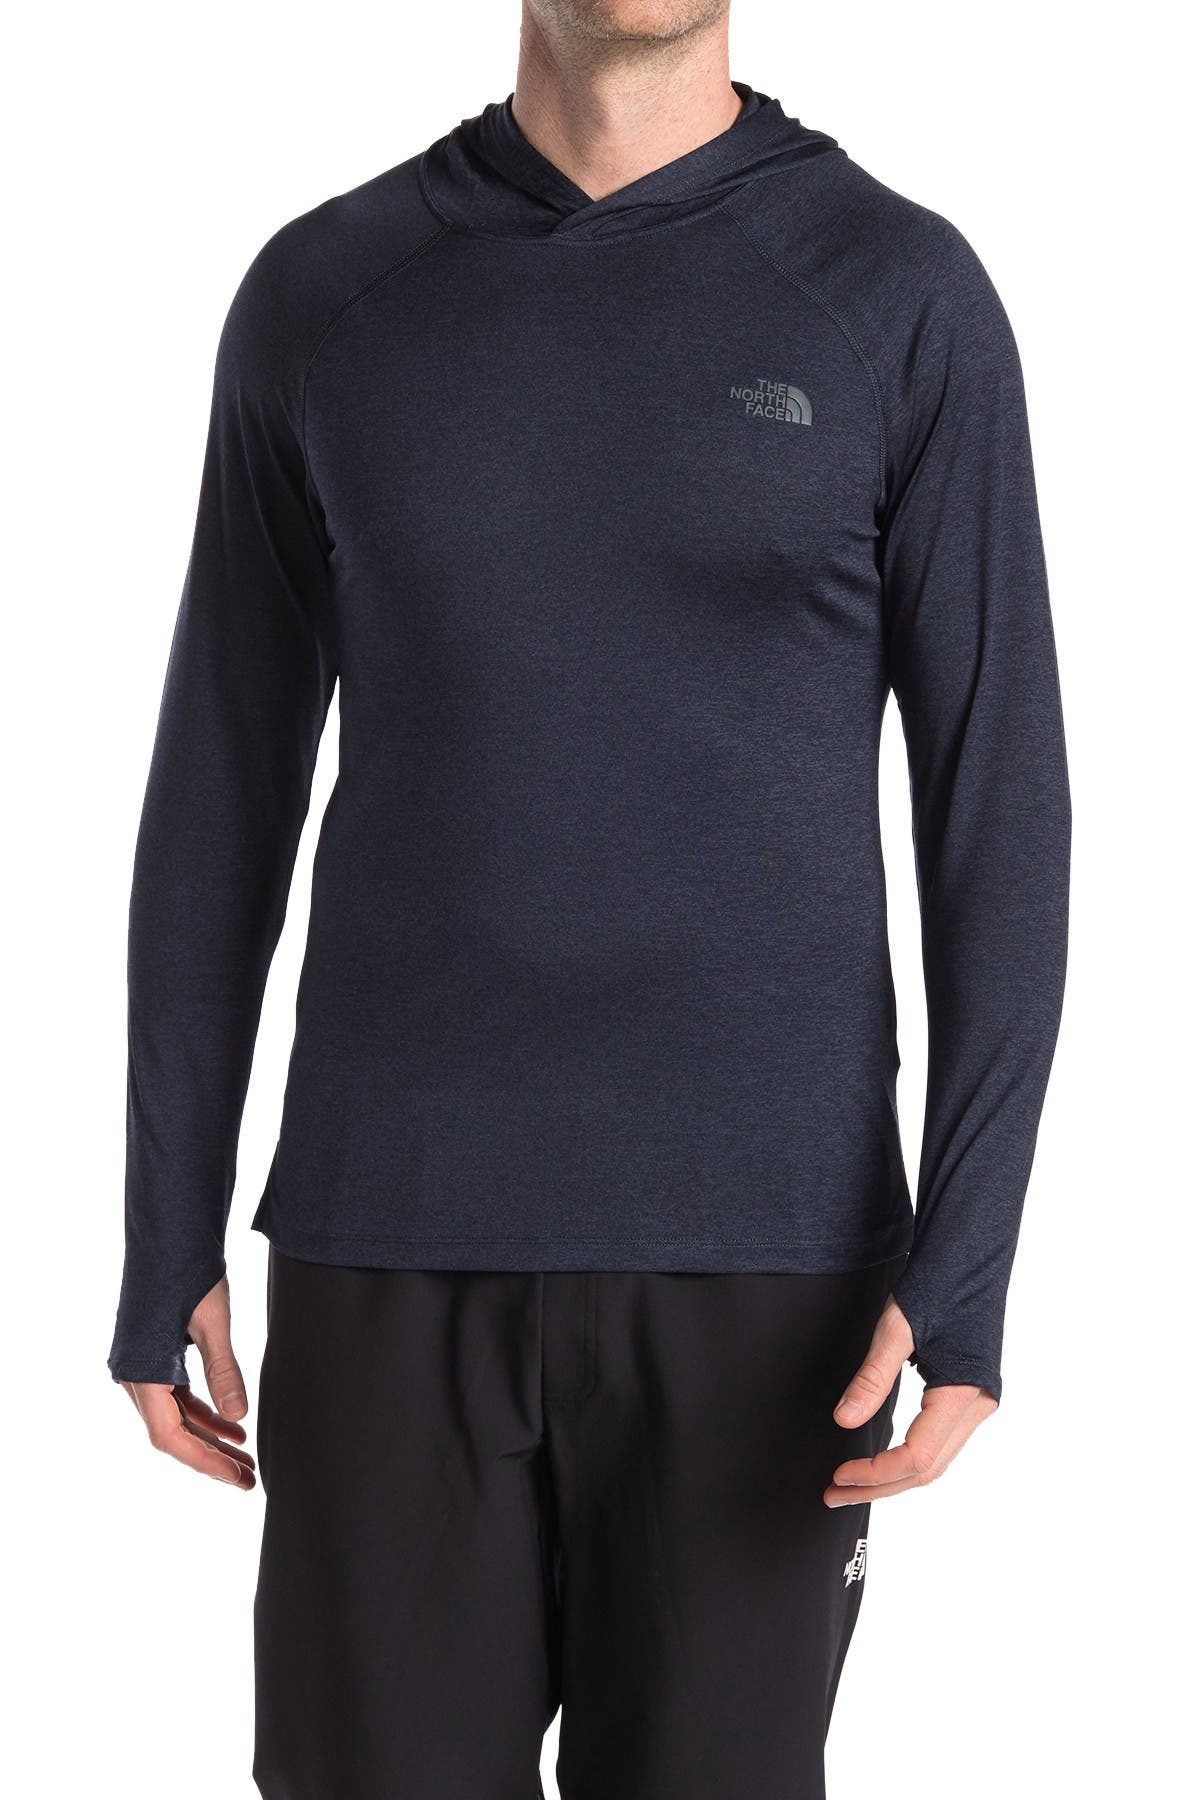 Image of The North Face Hyperlayer Active Thumbhole Hoodie